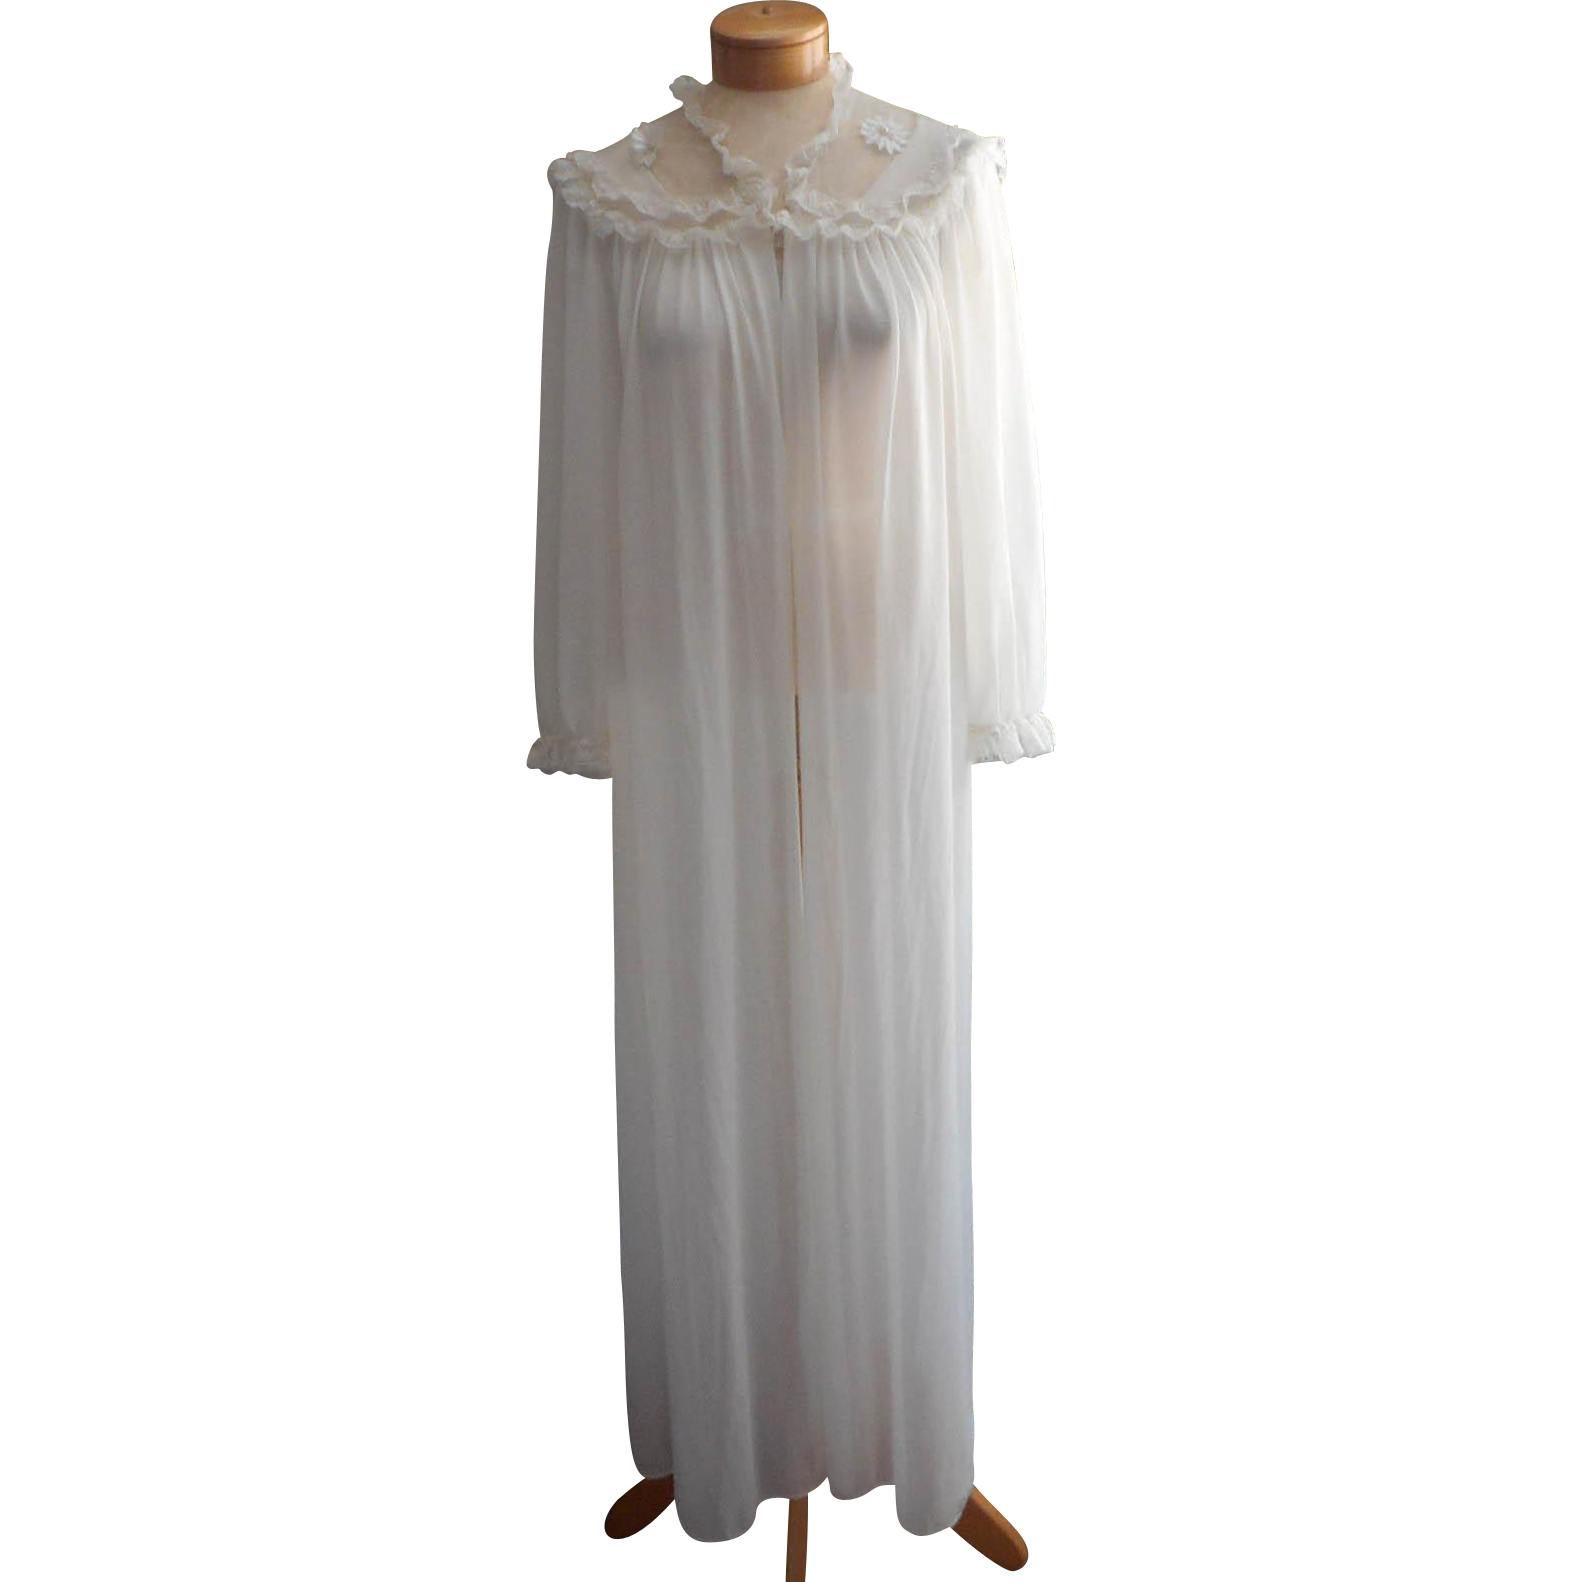 Vintage Robe Sheer Nylon Lace Flowers Bridal 1960s Long